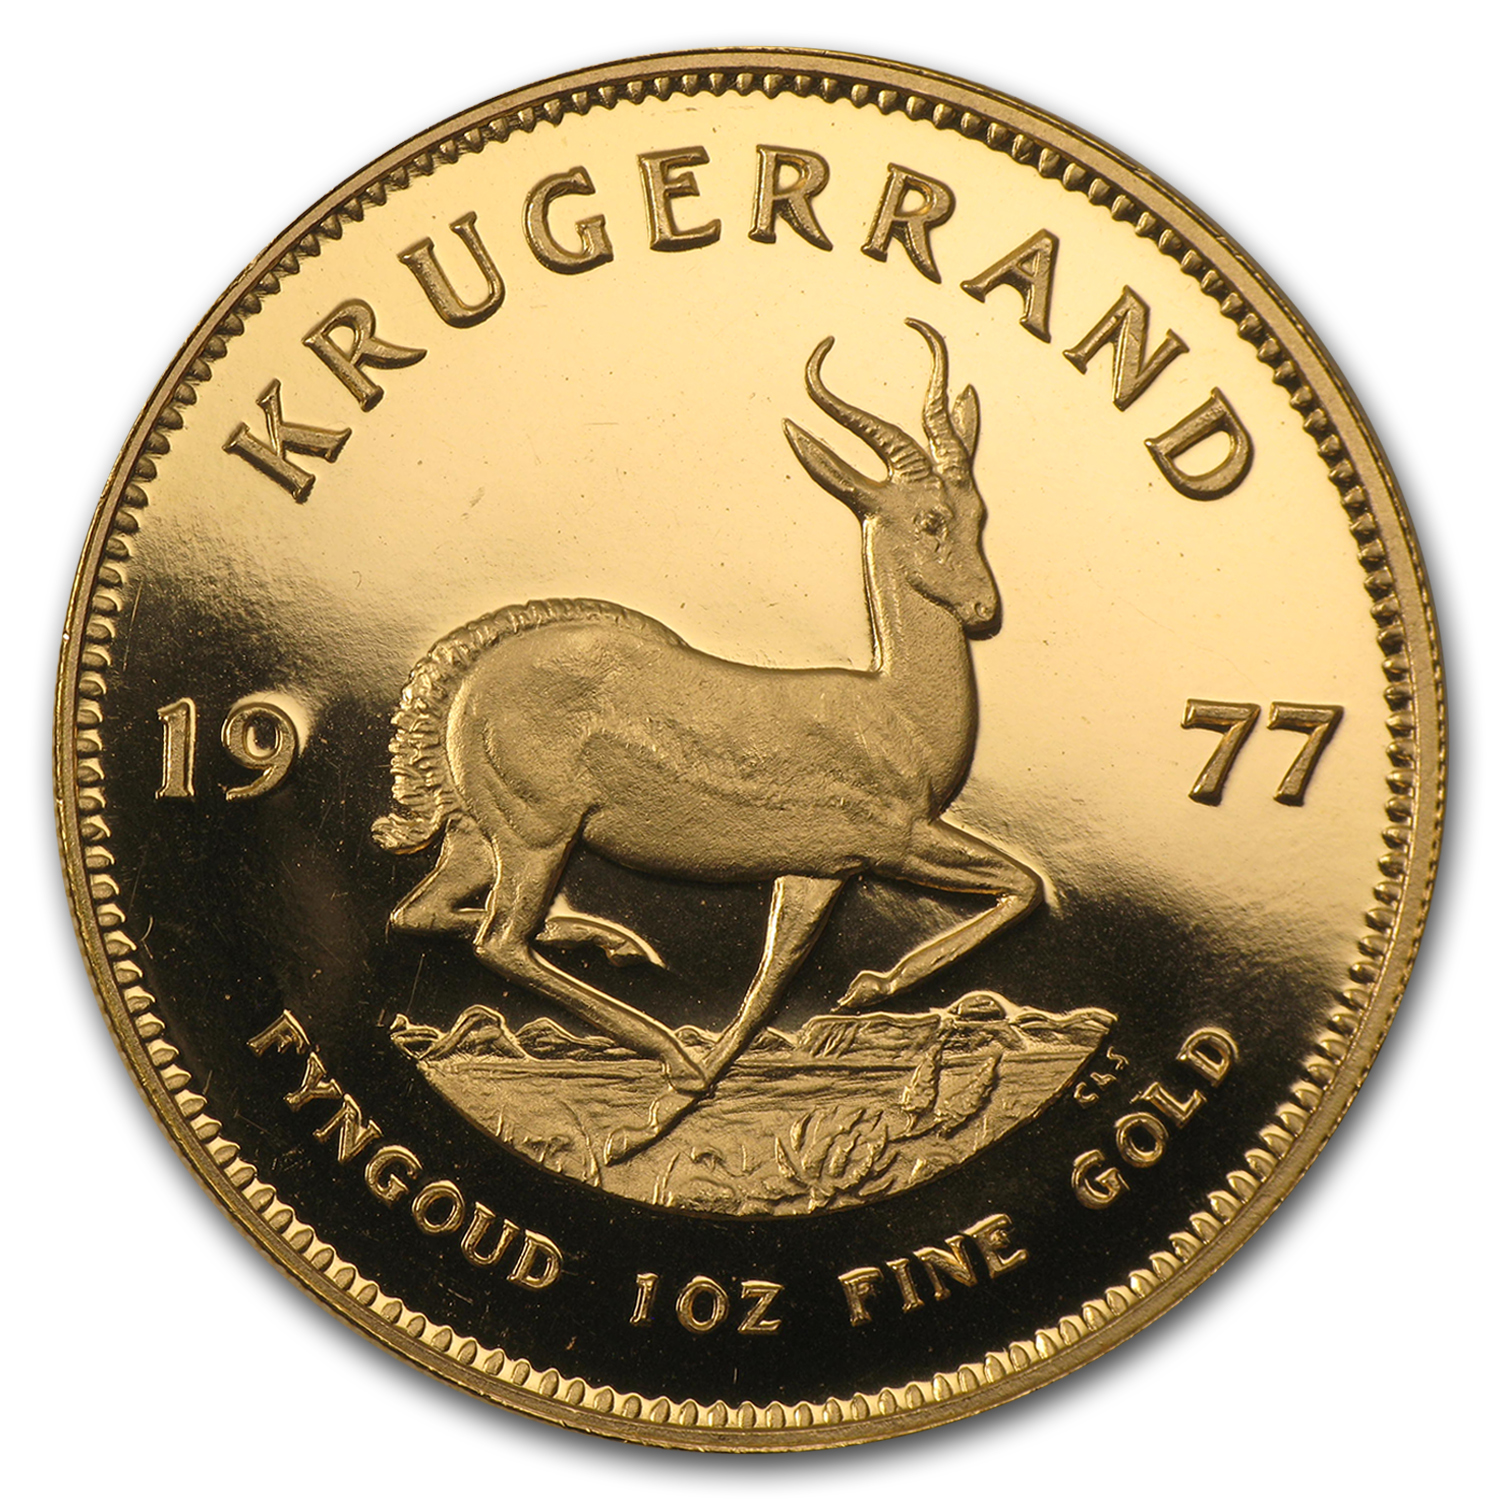 1977 South Africa 1 oz Proof Gold Krugerrand